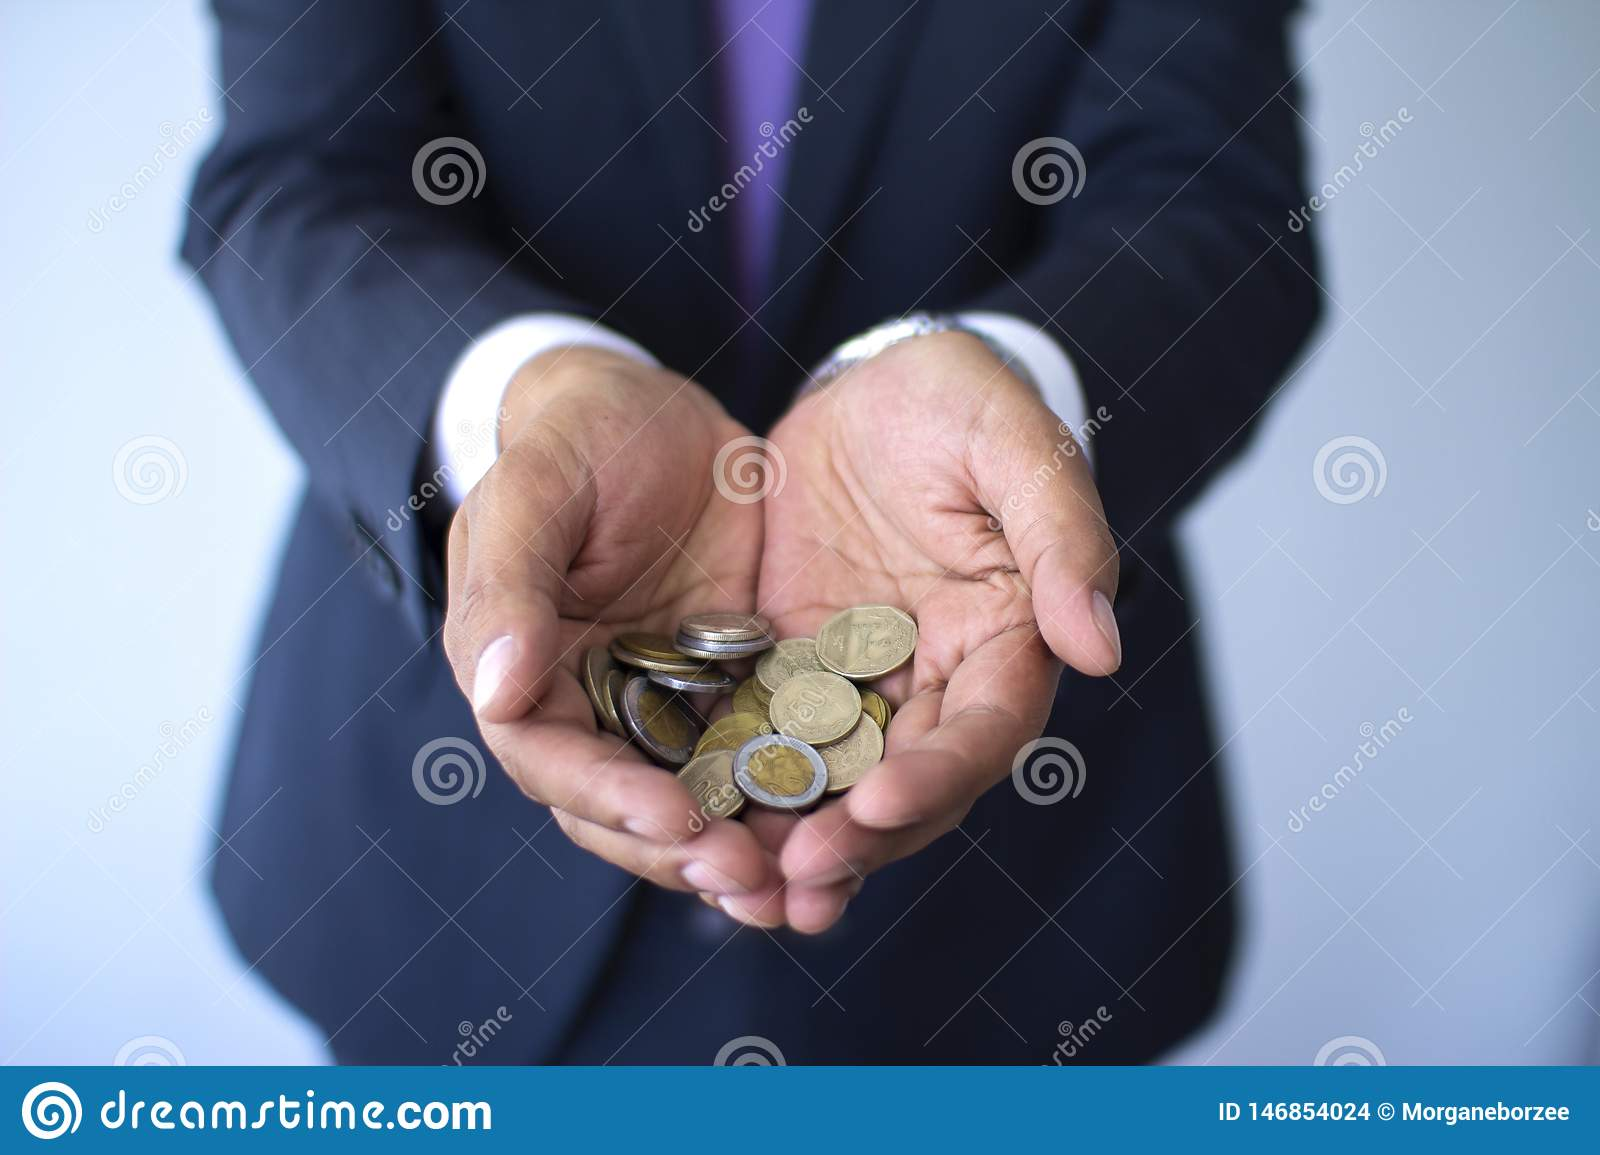 Business man in a suit holding Peruvian coins, Nuevos Soles currency concept